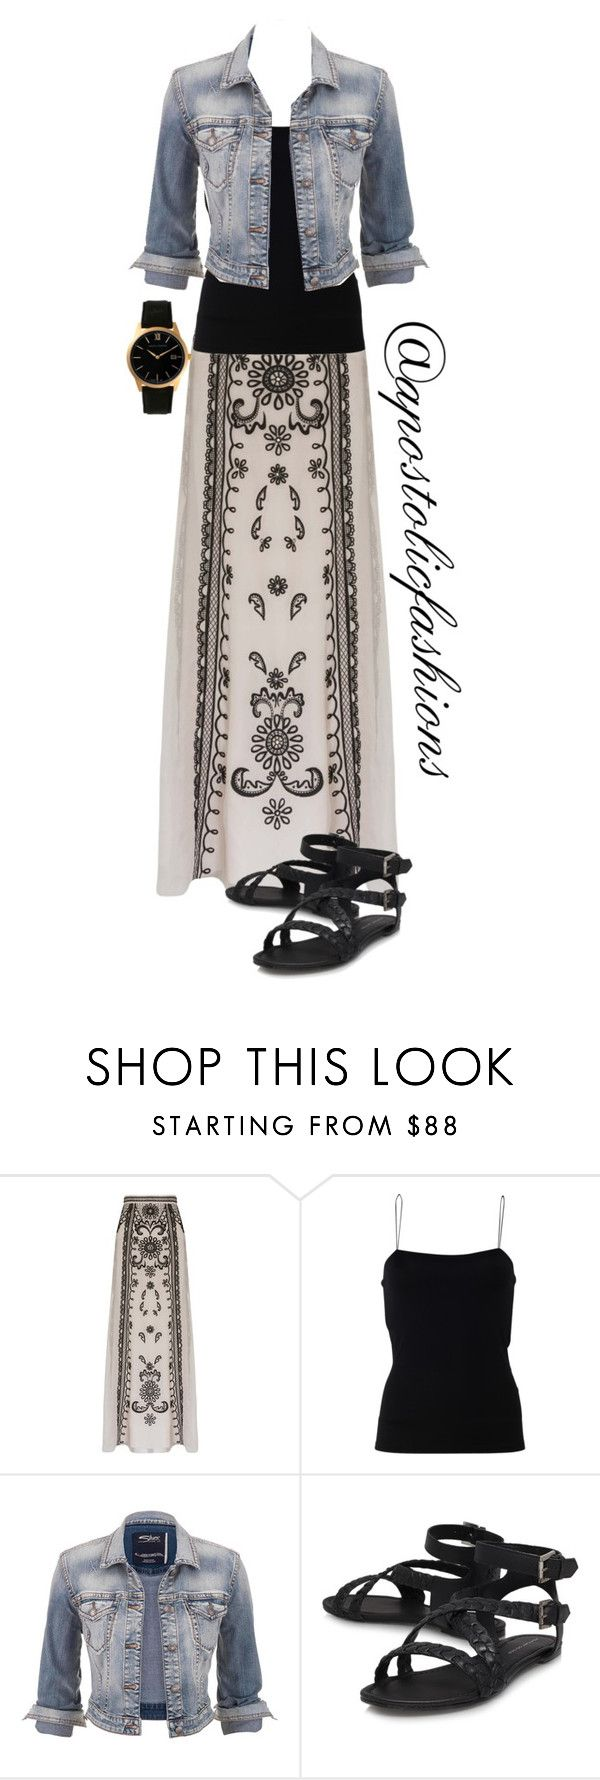 """""""Apostolic Fashions #1313"""" by apostolicfashions on Polyvore featuring Temperley London, T By Alexander Wang, maurices and Larsson & Jennings"""